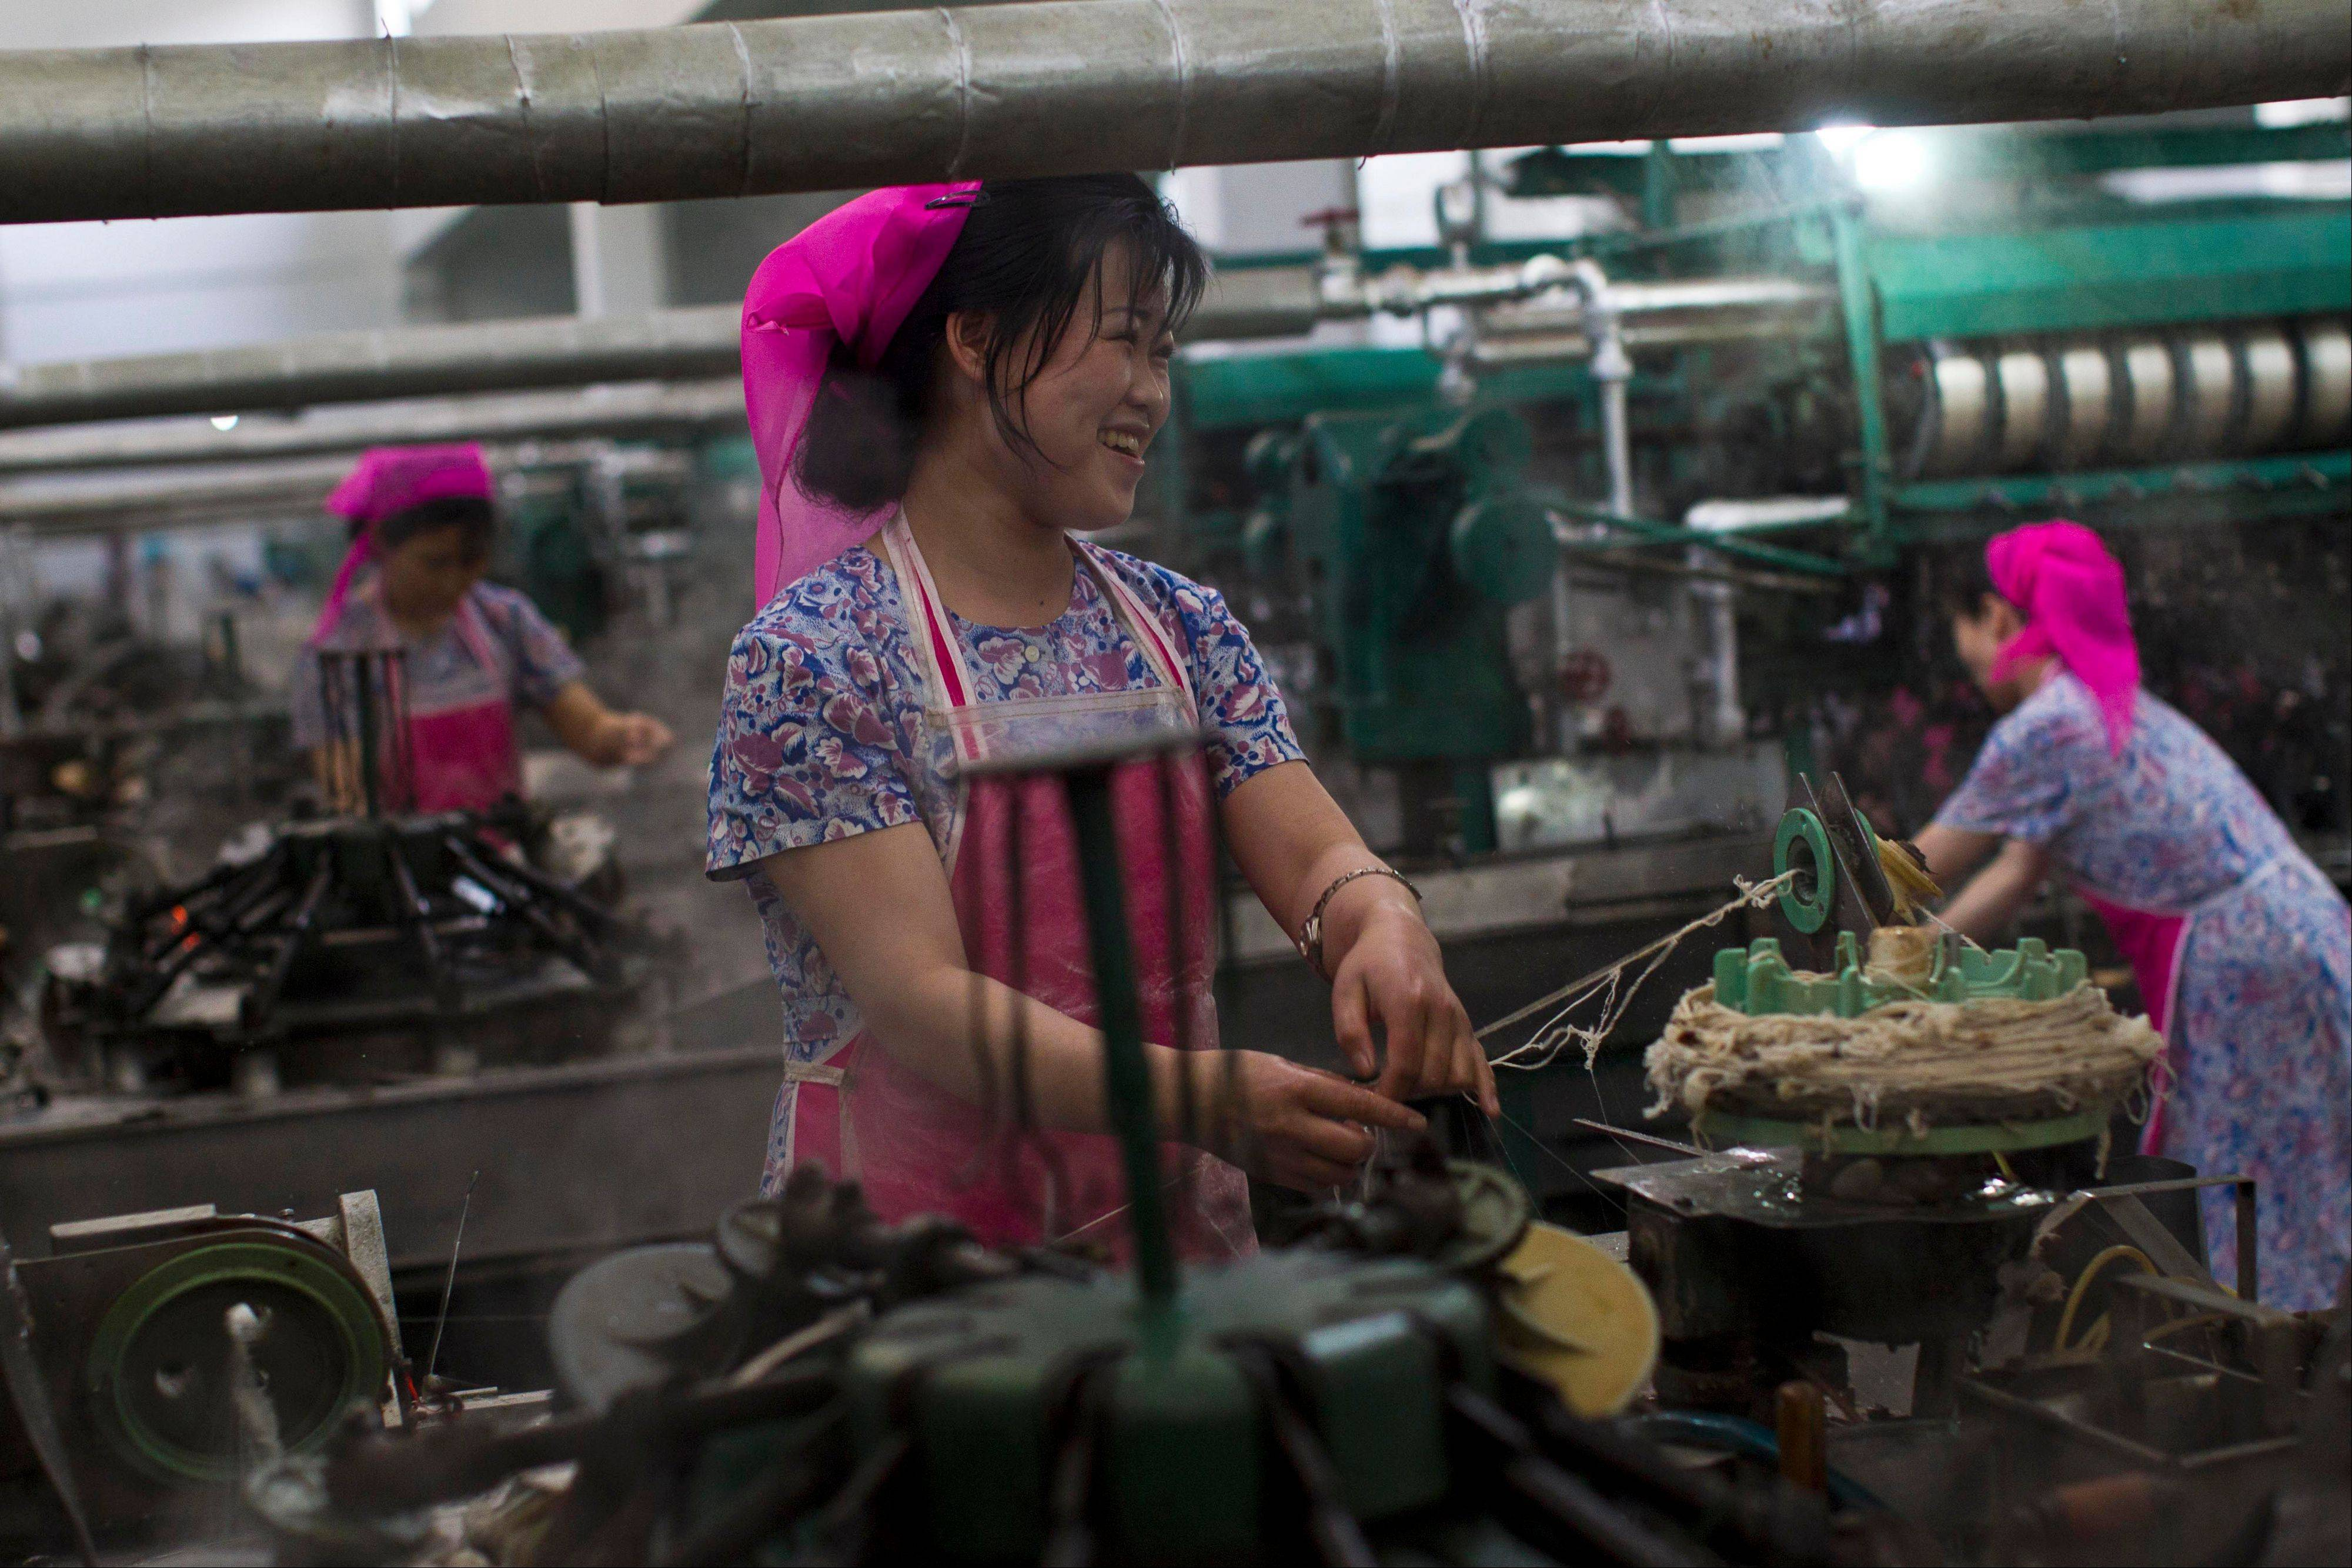 In this Monday, April 9, 2012 photo, North Korean women work in a thread factory in Pyongyang, North Korea. A North Korean economist said that the government introduced new economic management methods in April 2013 that relax state control of workers' salaries. (AP Photo/David Guttenfelder)